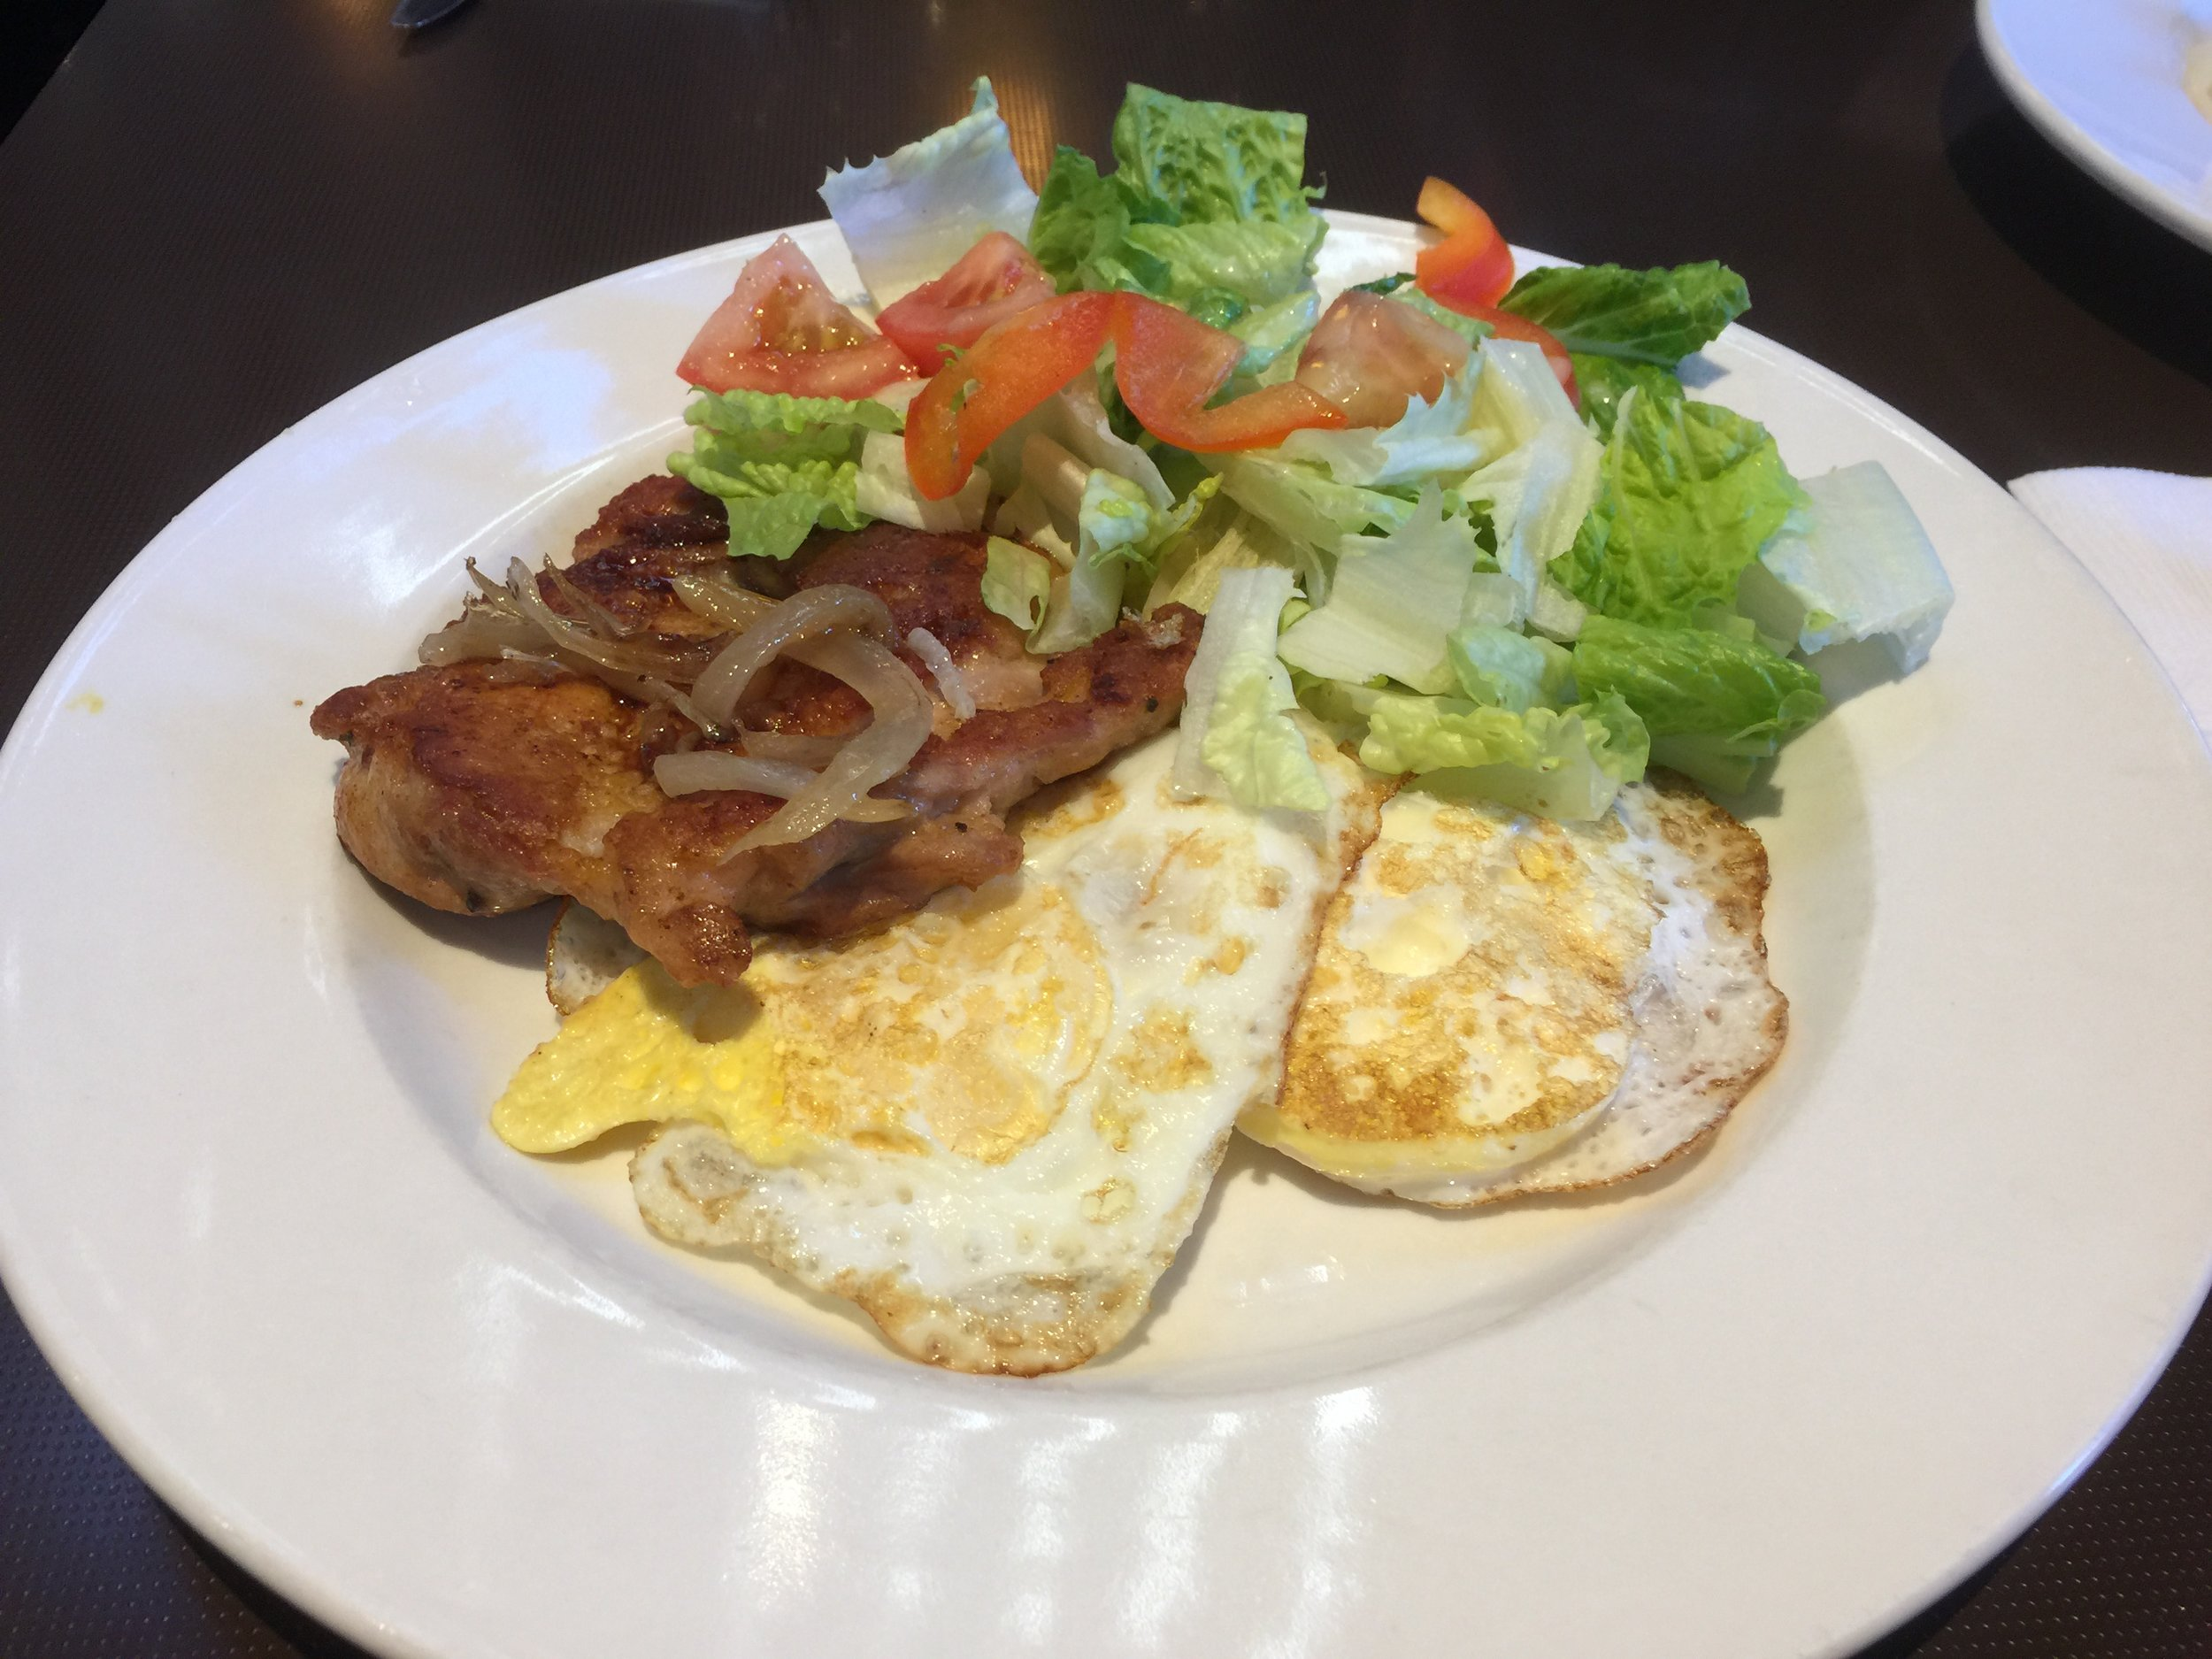 Chicken Steak, two eggs, salad is extra $2.50 add on. Without the salad it's $7.95 and comes with a hot drink.